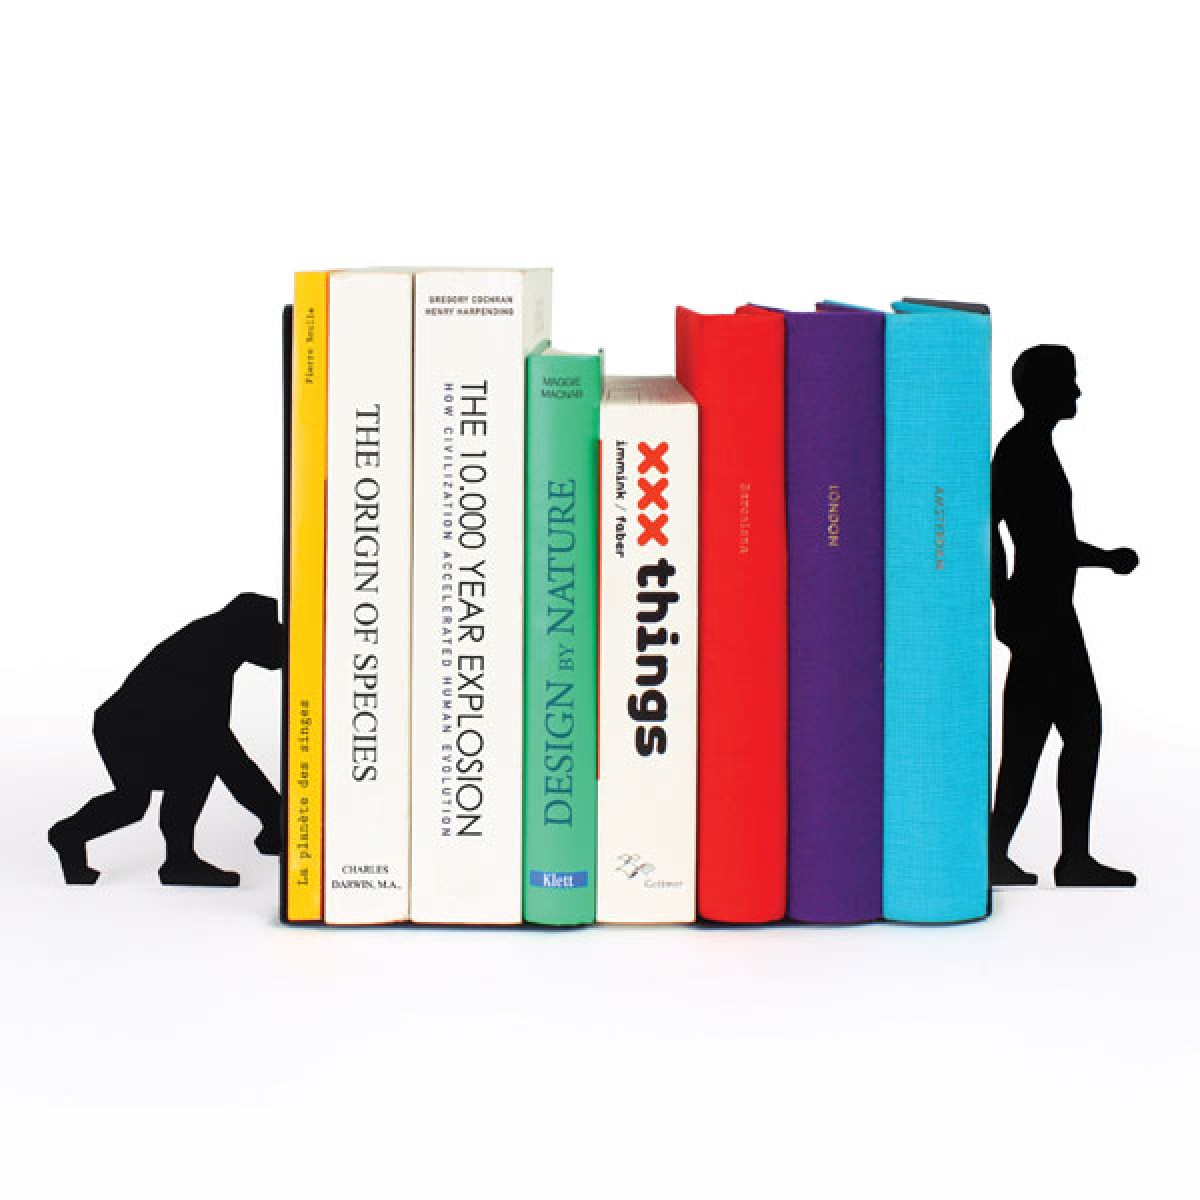 block bookends  black and white  modern book ends - evolution book ends  black